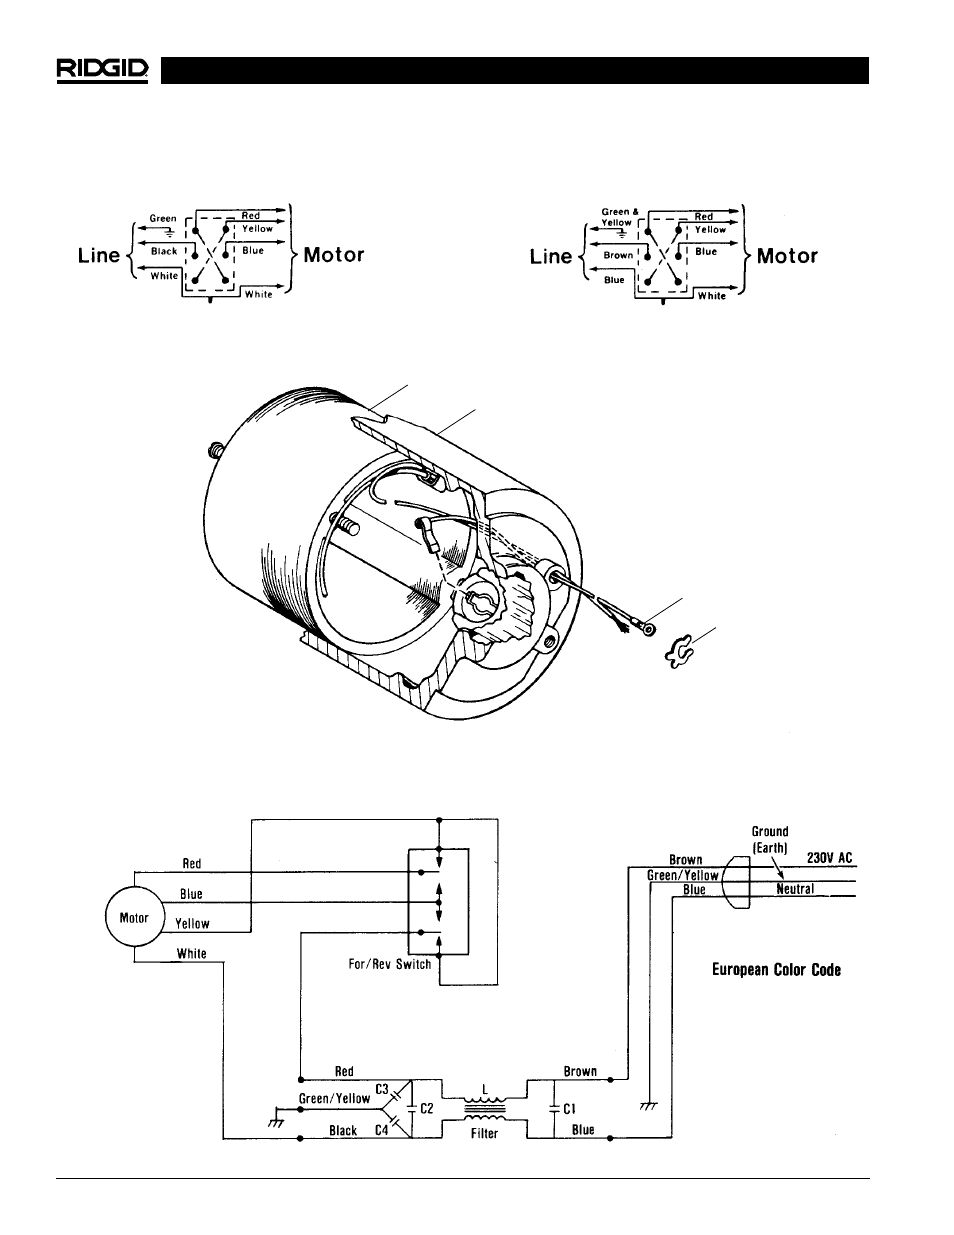 Wiring Diagram 9hp Vanguard 27 Images Harness Ridgid 700 Page14 300 Threader 11hp At Cita